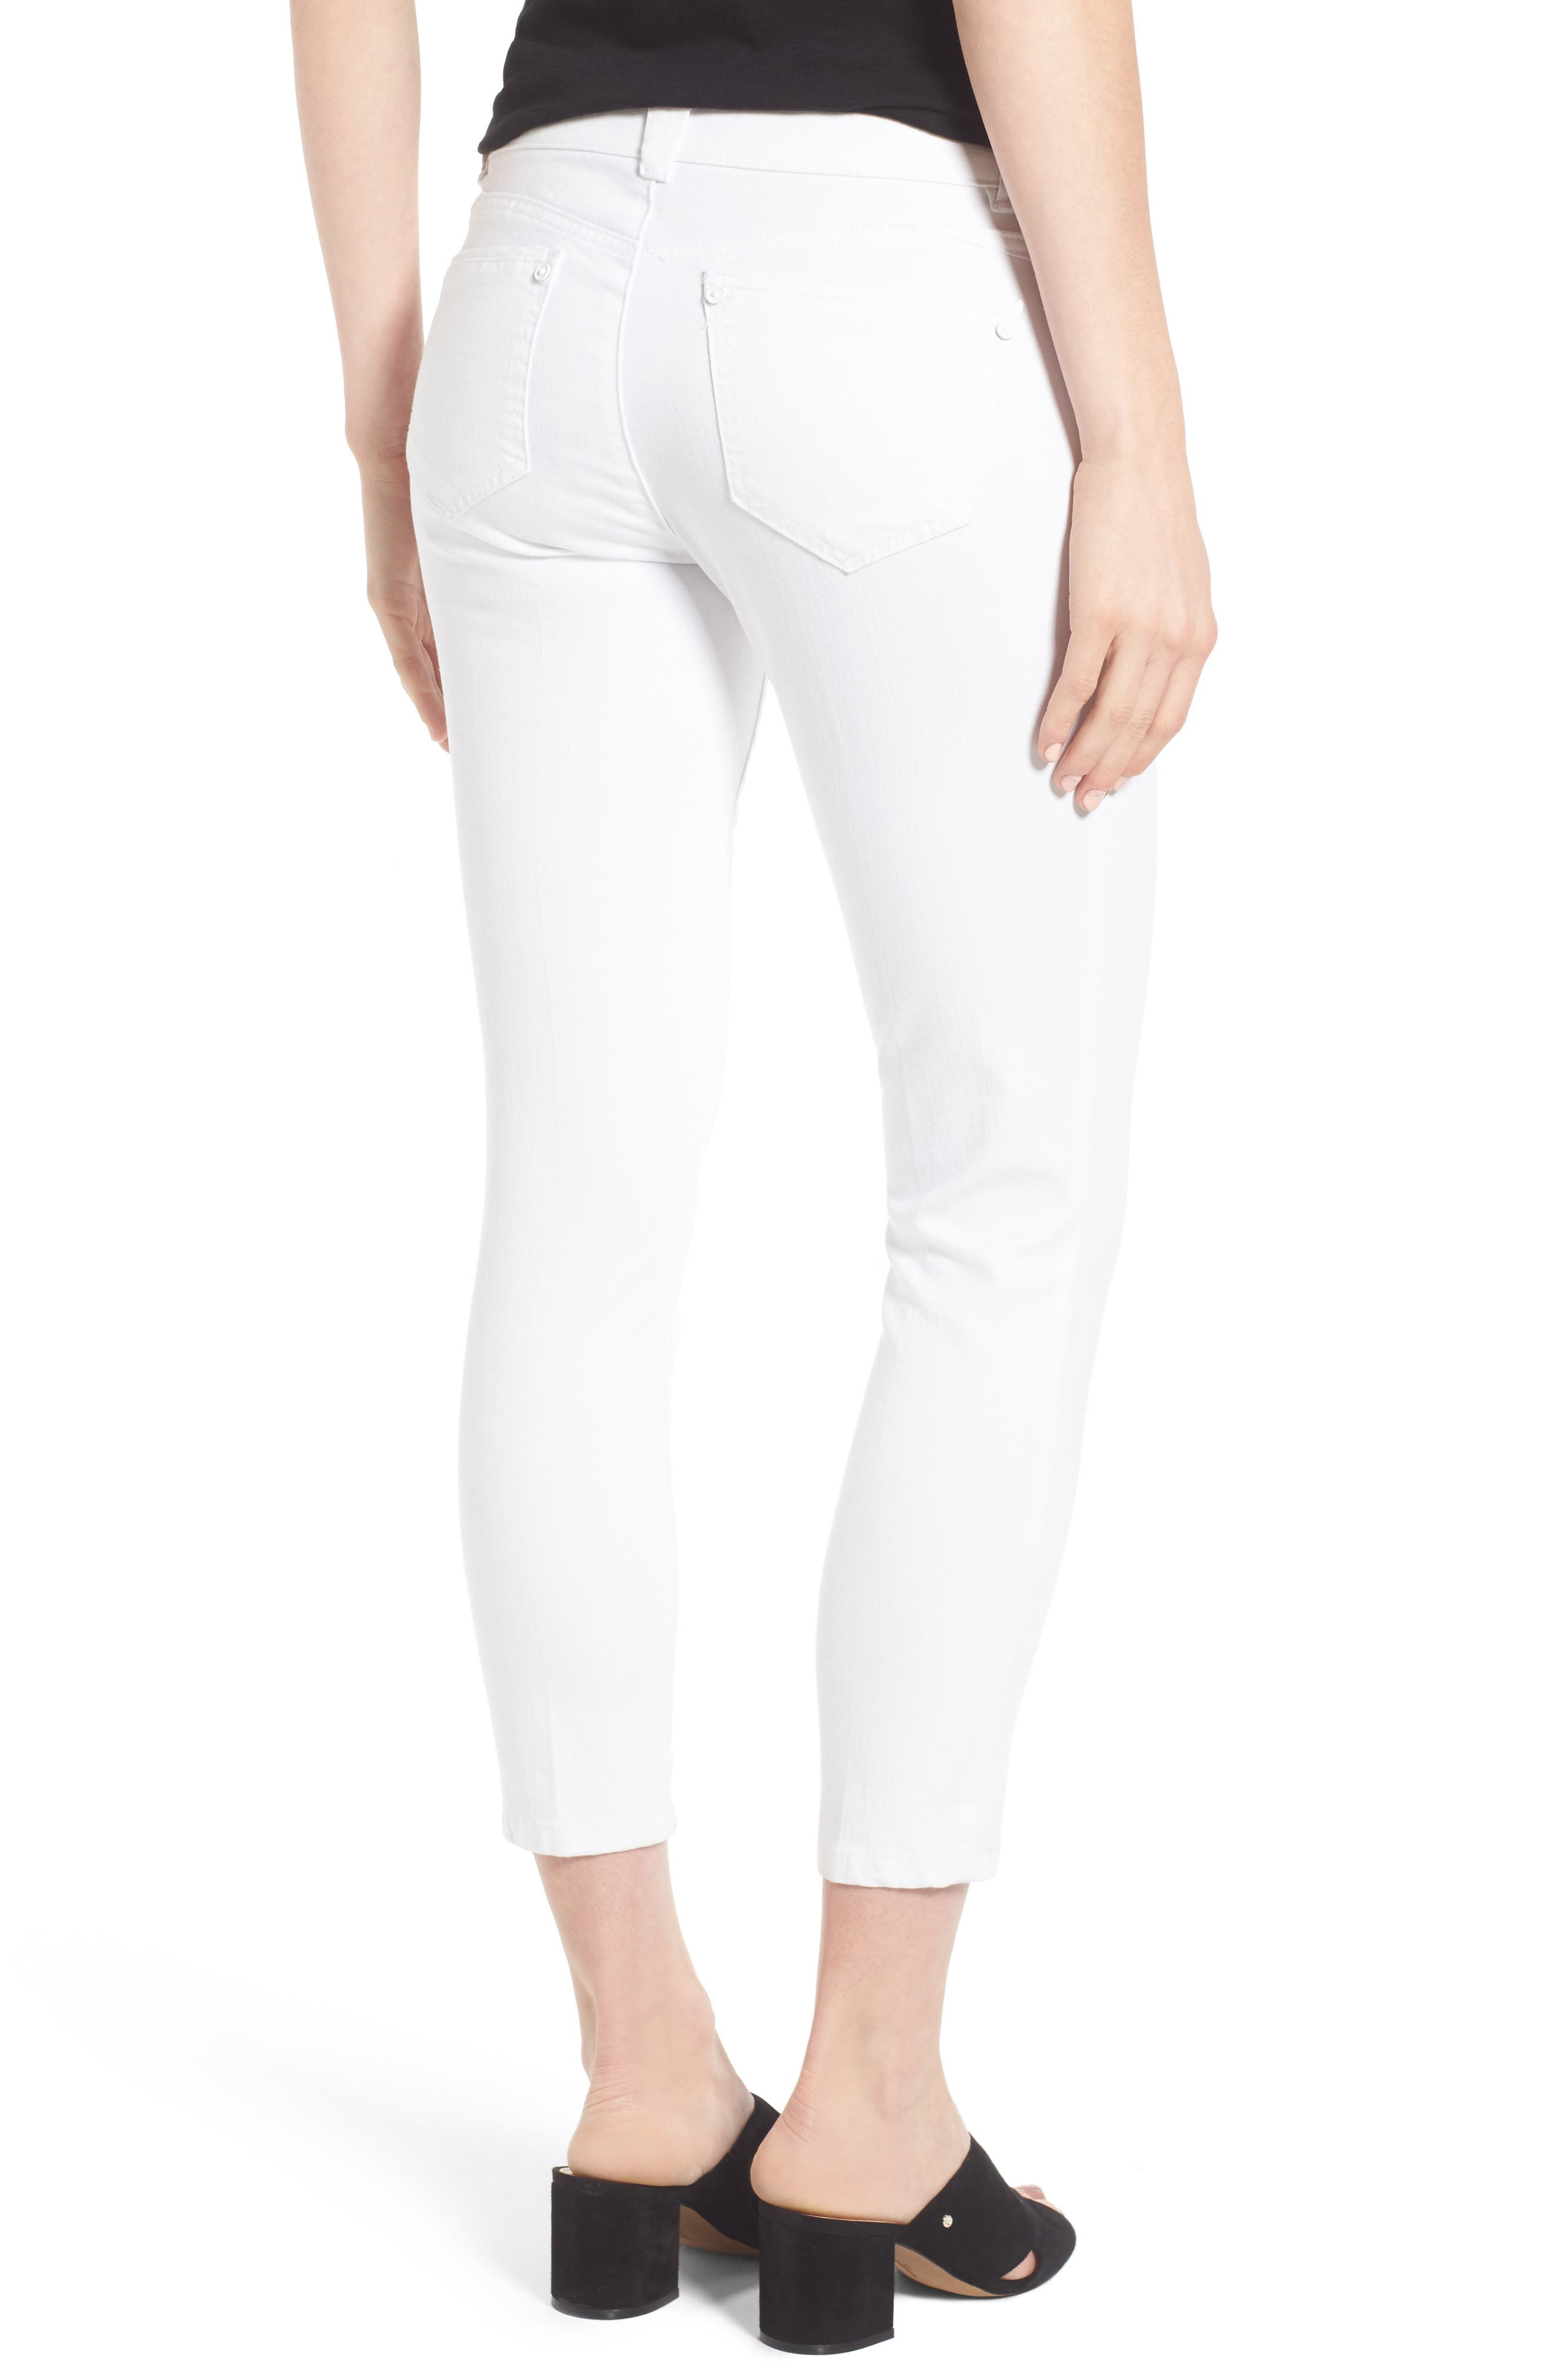 Ab-solution Skinny Crop Jeans,                             Alternate thumbnail 2, color,                             101